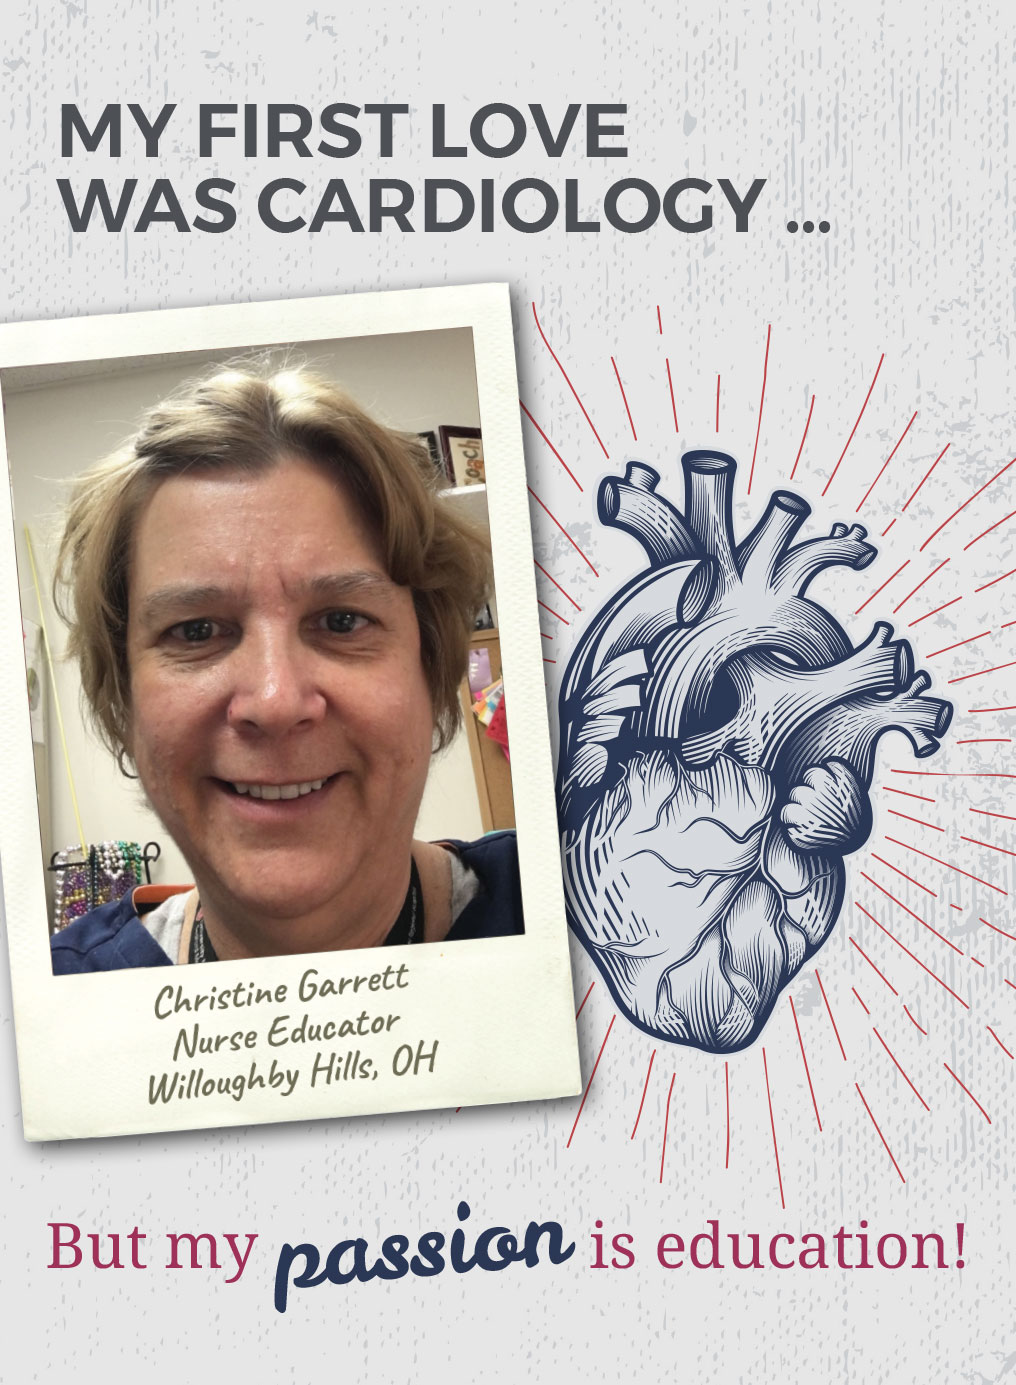 My first love was cardiology. But my passion is education! Christine Garrett, Nurse Educator, Willoughby Hills, OH